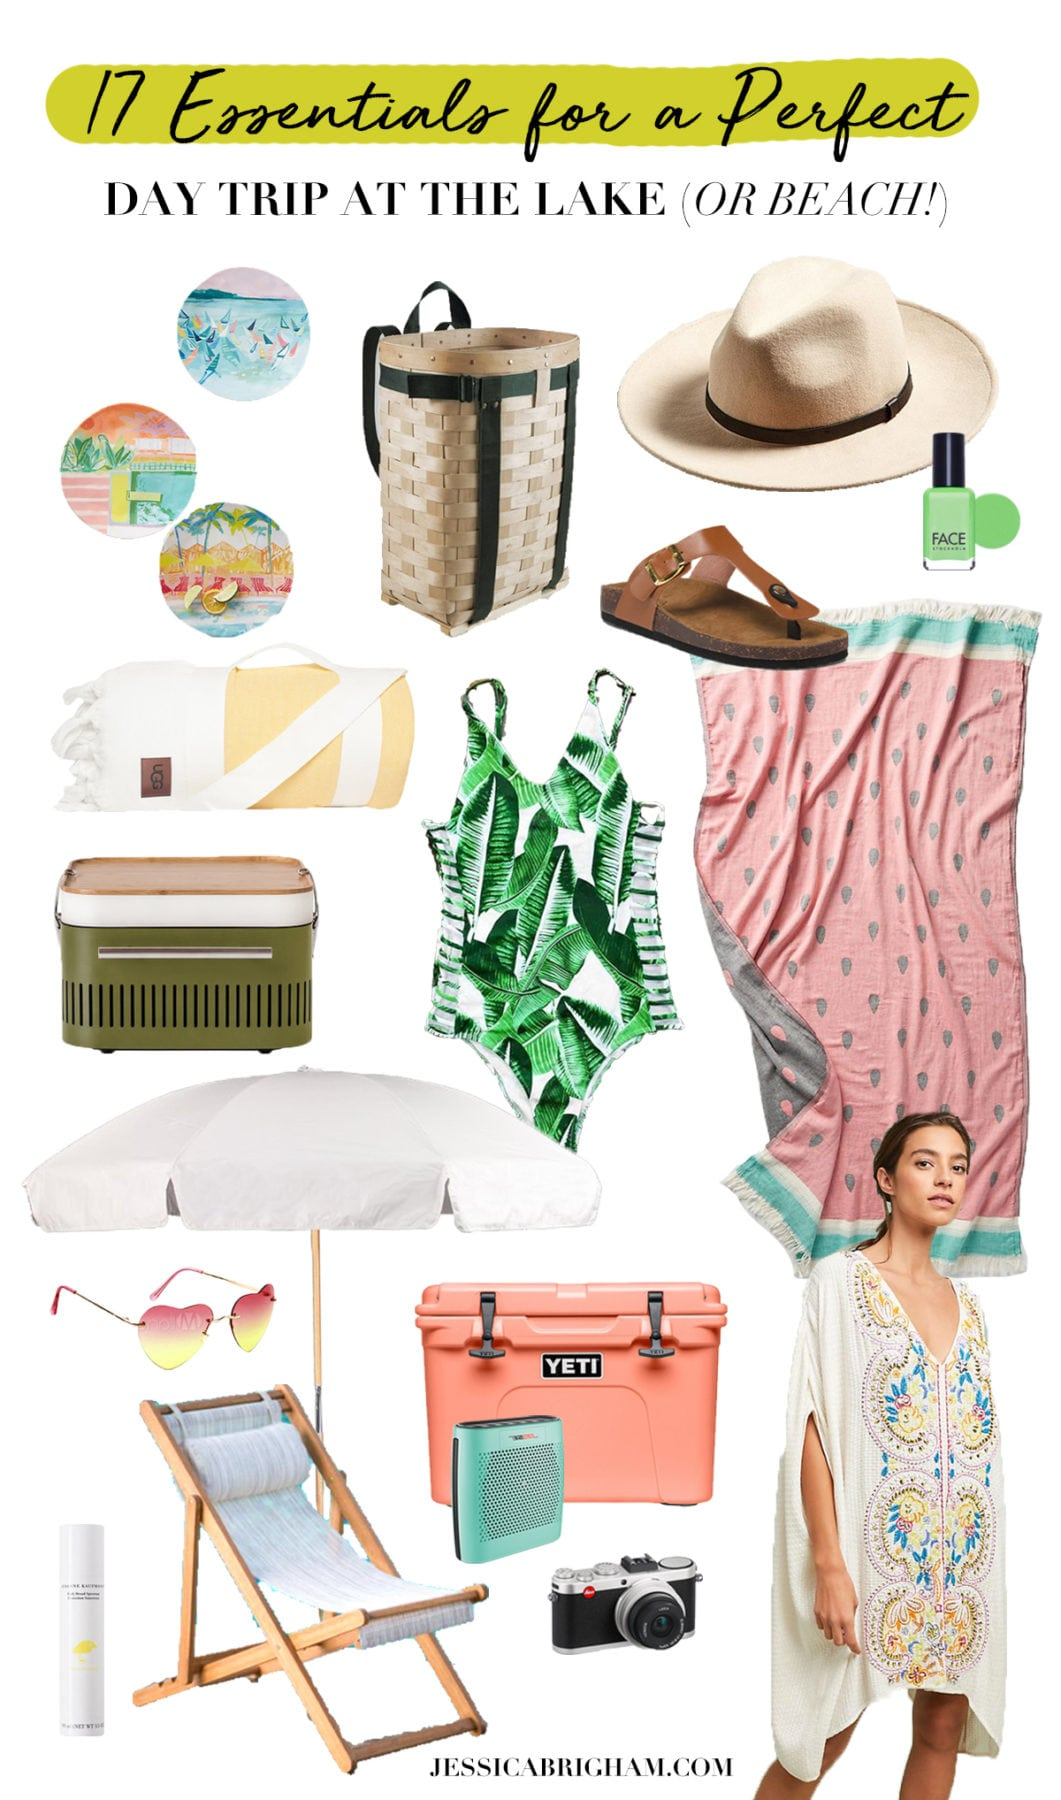 17 Essentials for a Perfect Day at the Lake (or Beach!) | What to Bring | Jessica Brigham | Magazine Ready for Life